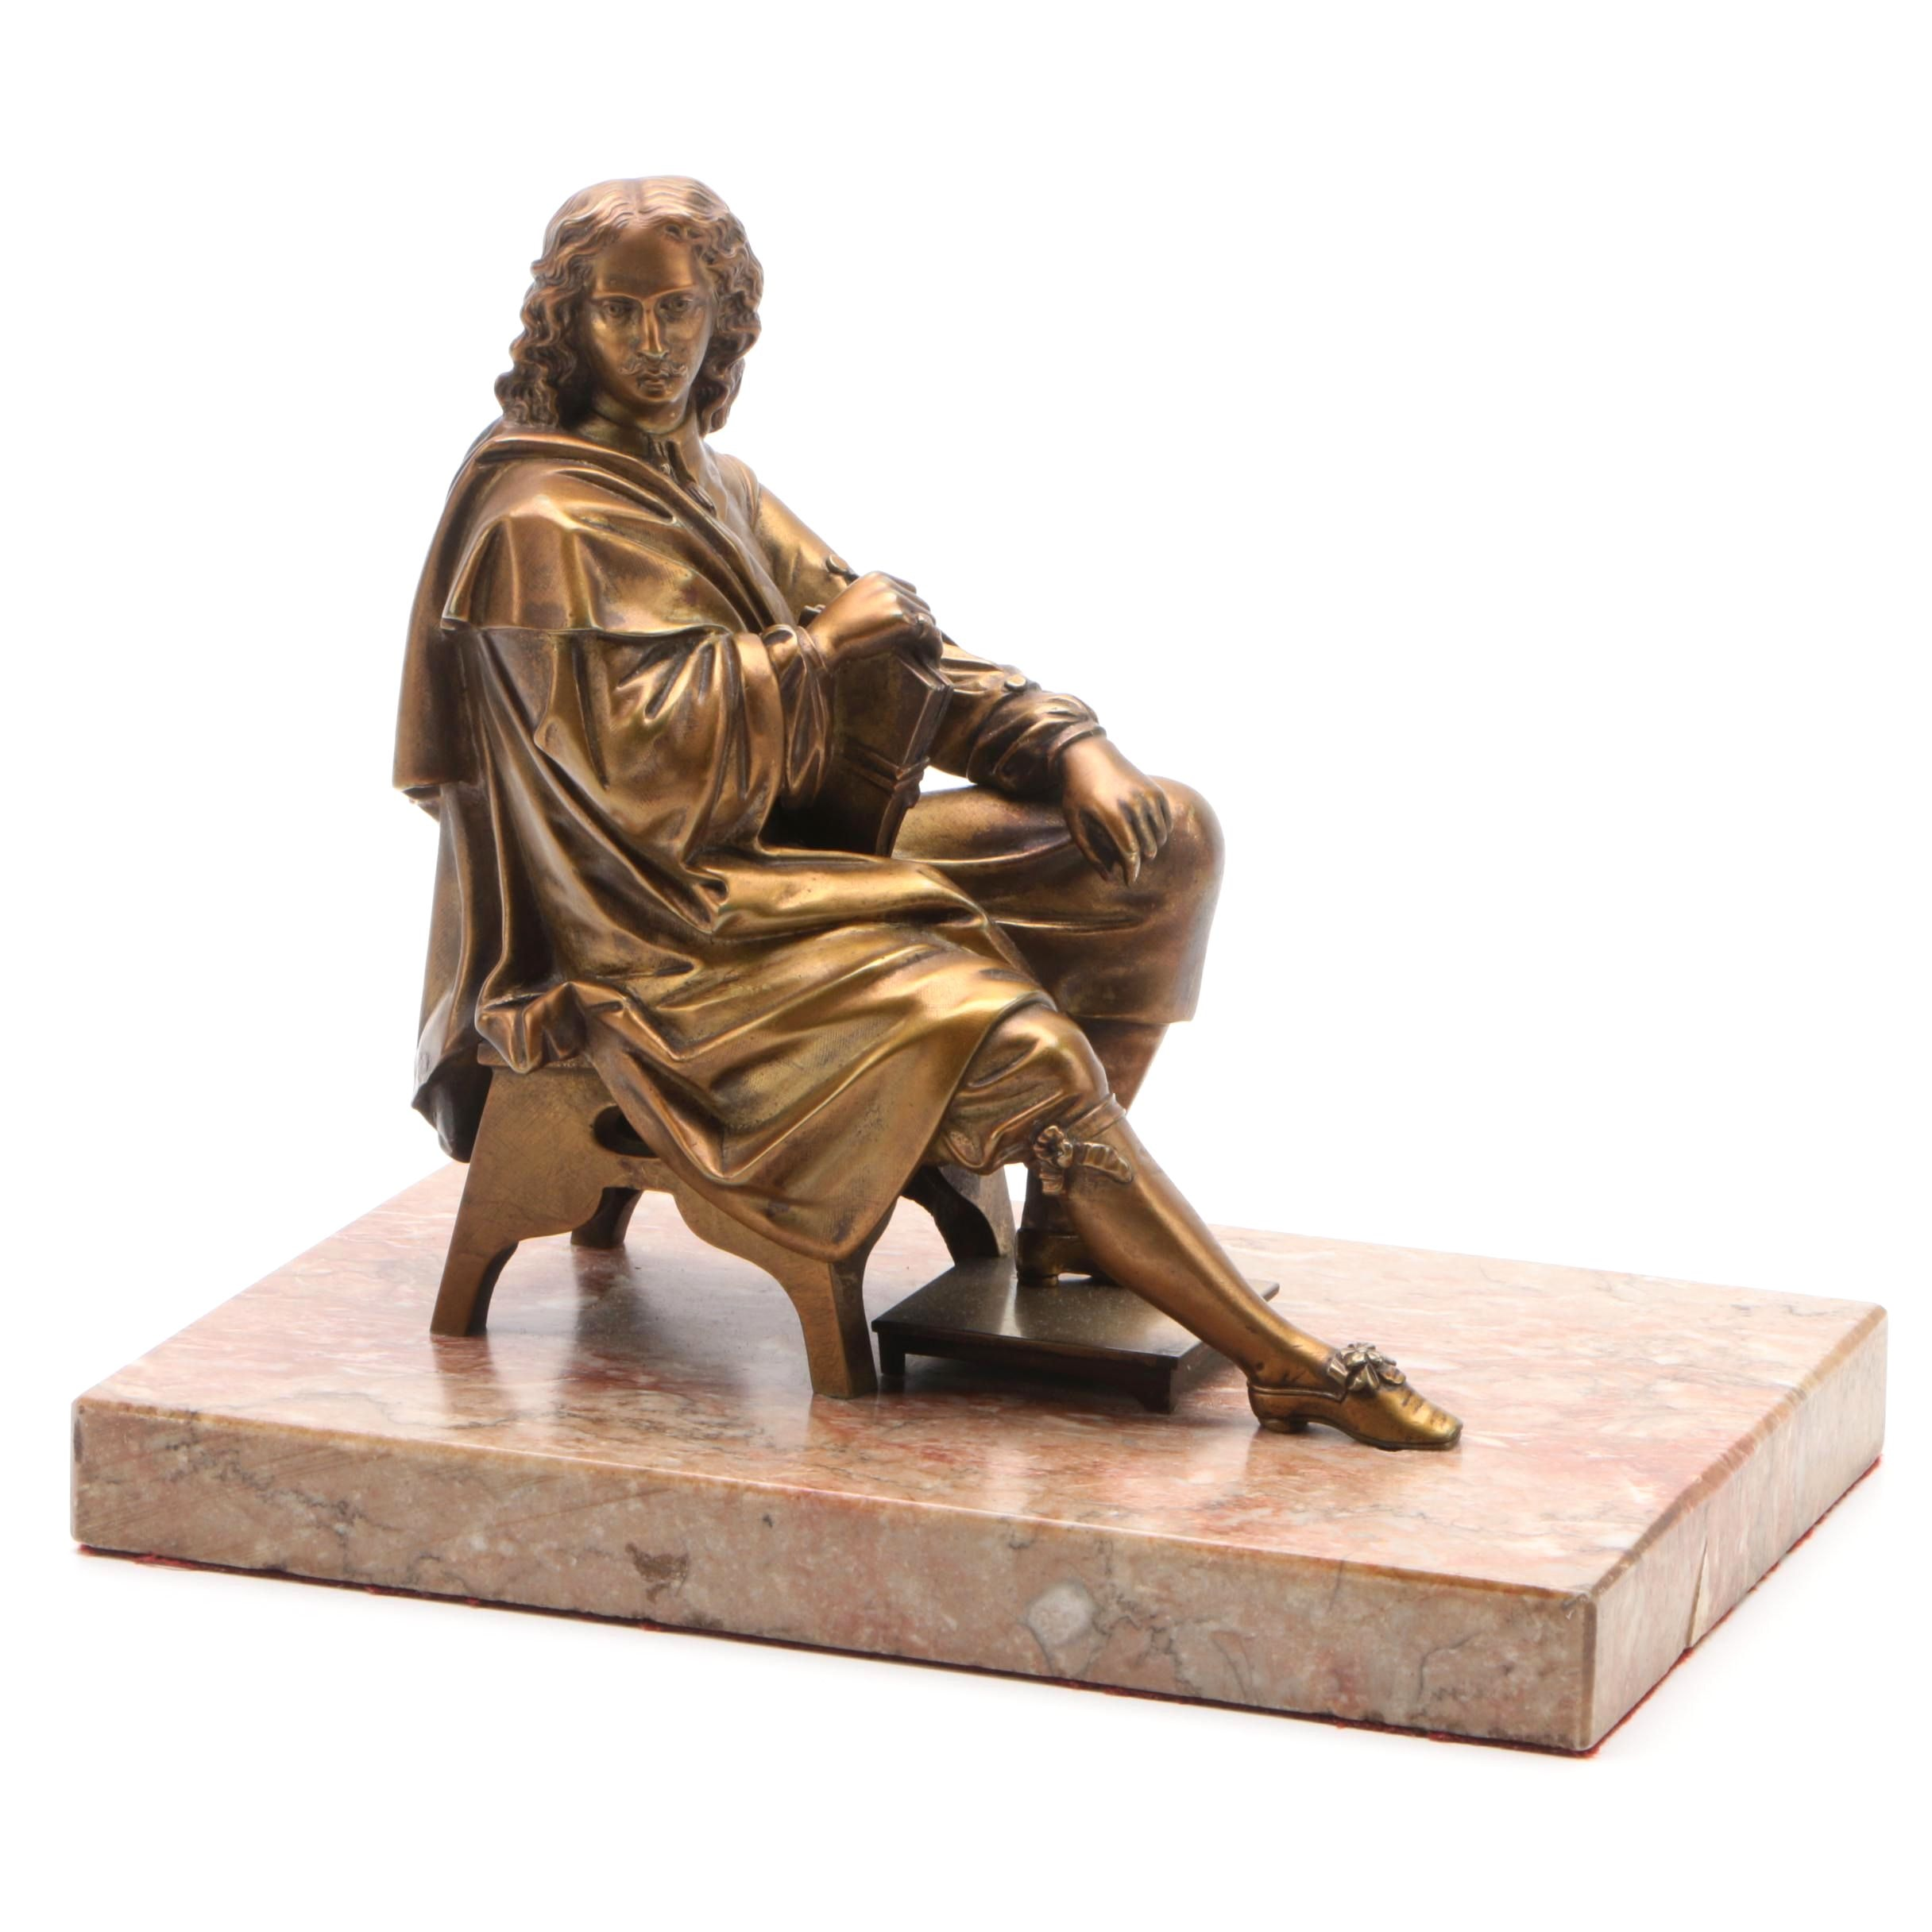 Brass Sculpture of 17th Century French Scholar on Marble Base